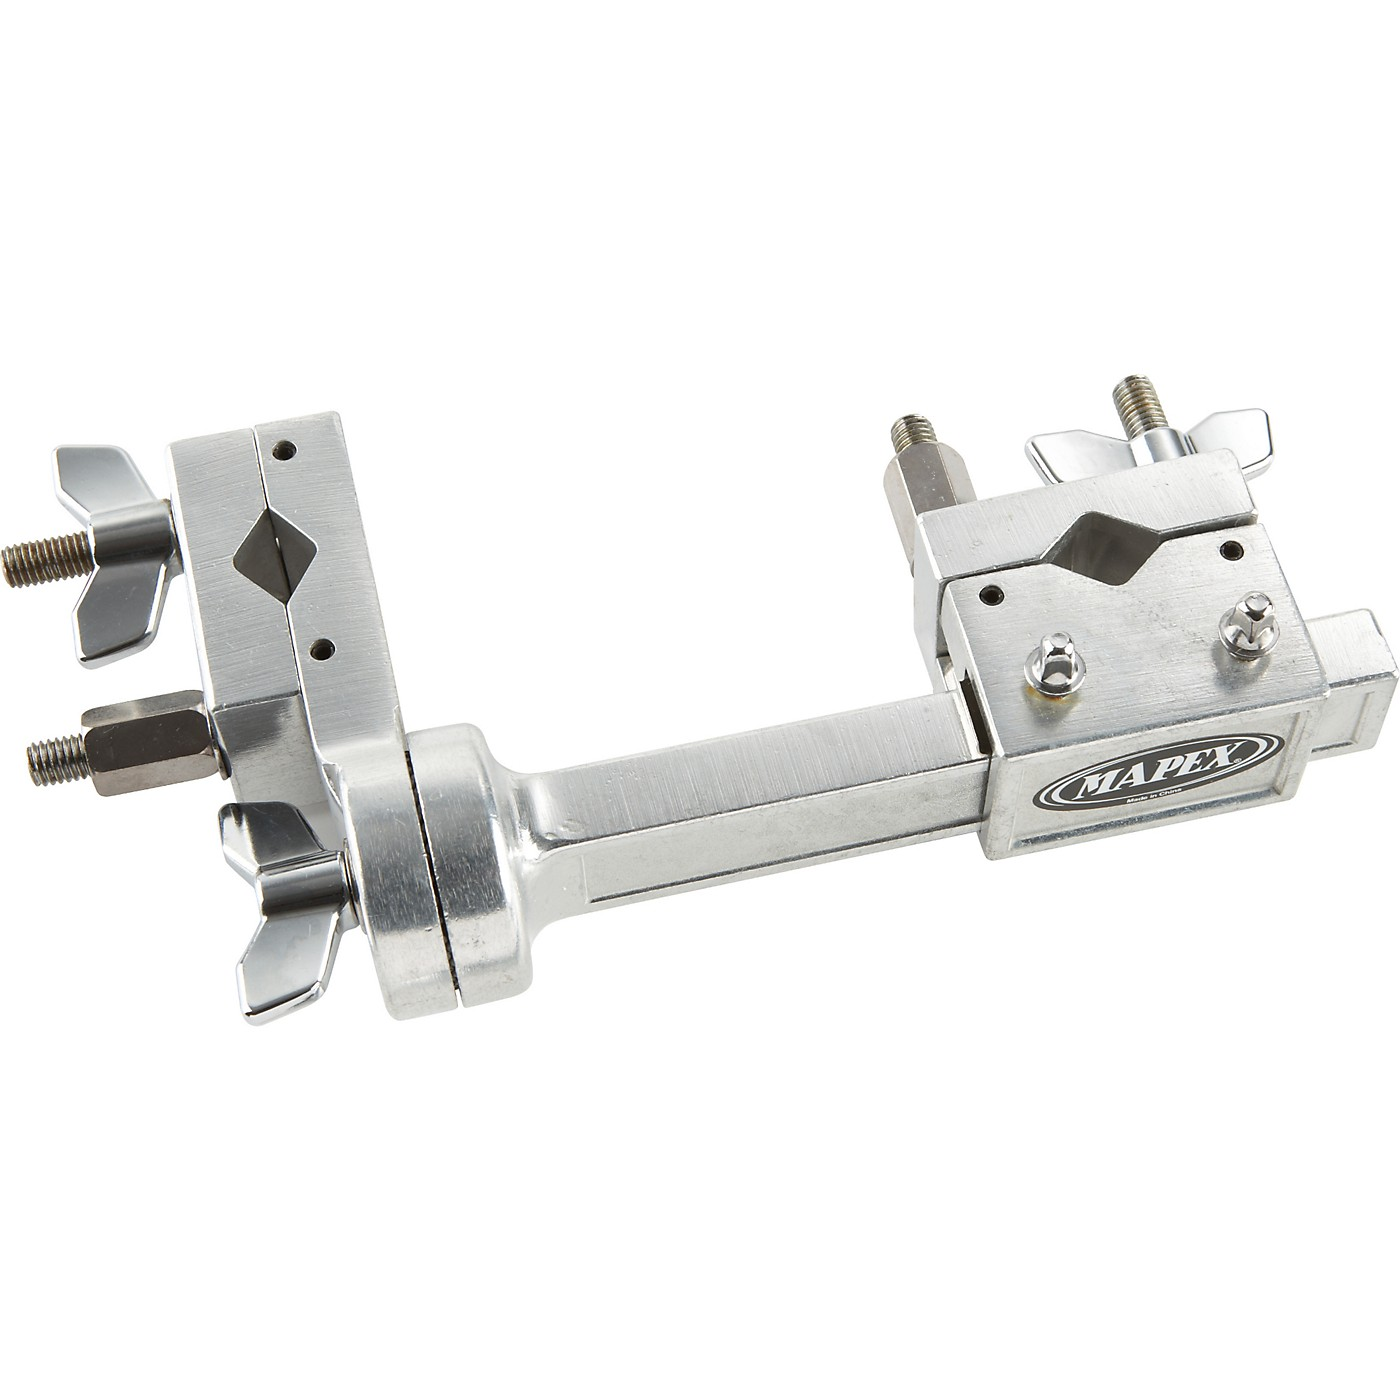 Mapex MCH913 Multi-Purpose Clamp thumbnail